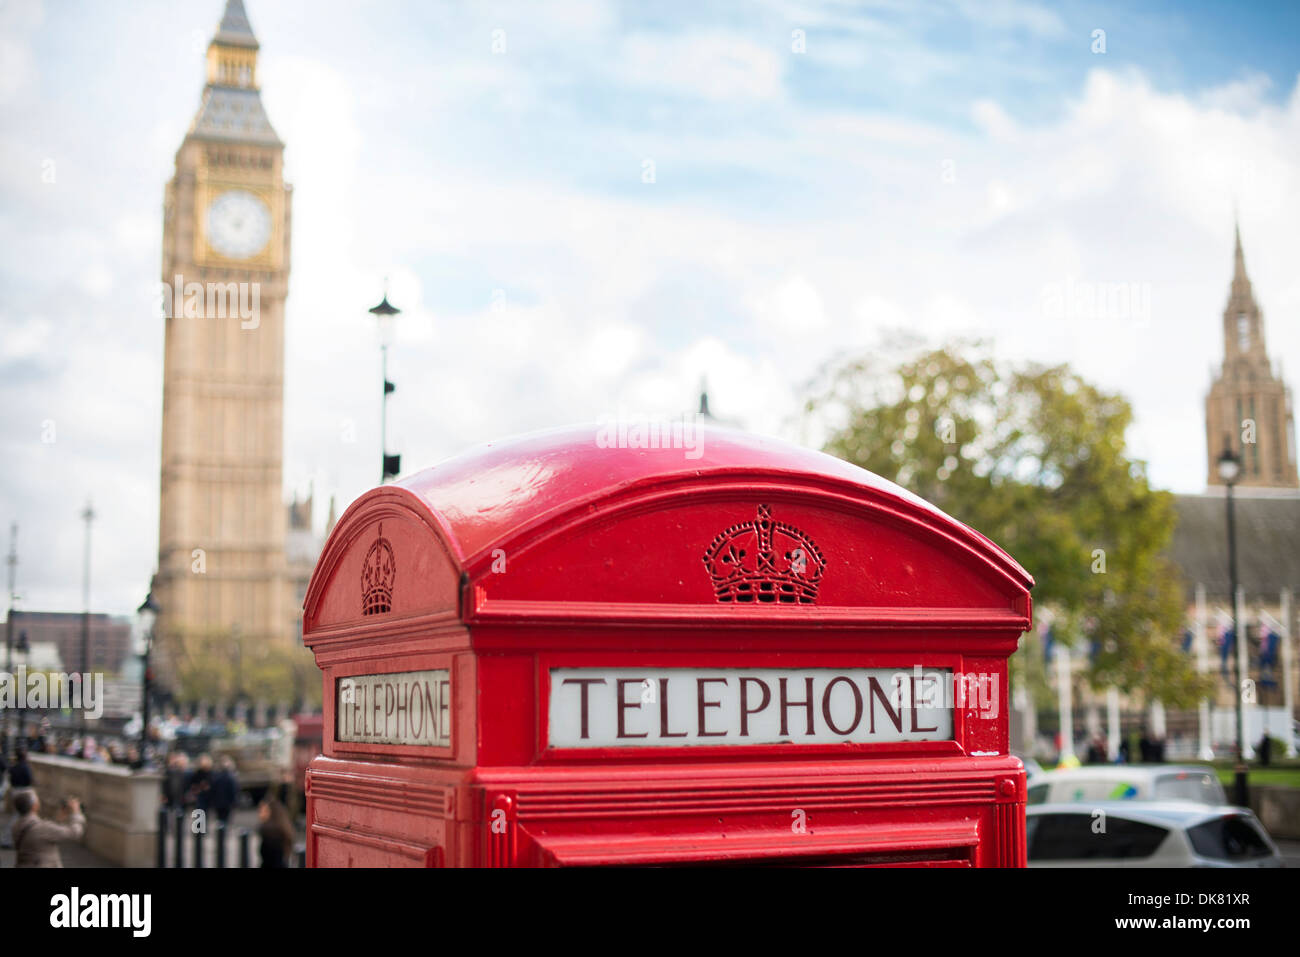 Big ben and red phone cabine in London Stock Photo